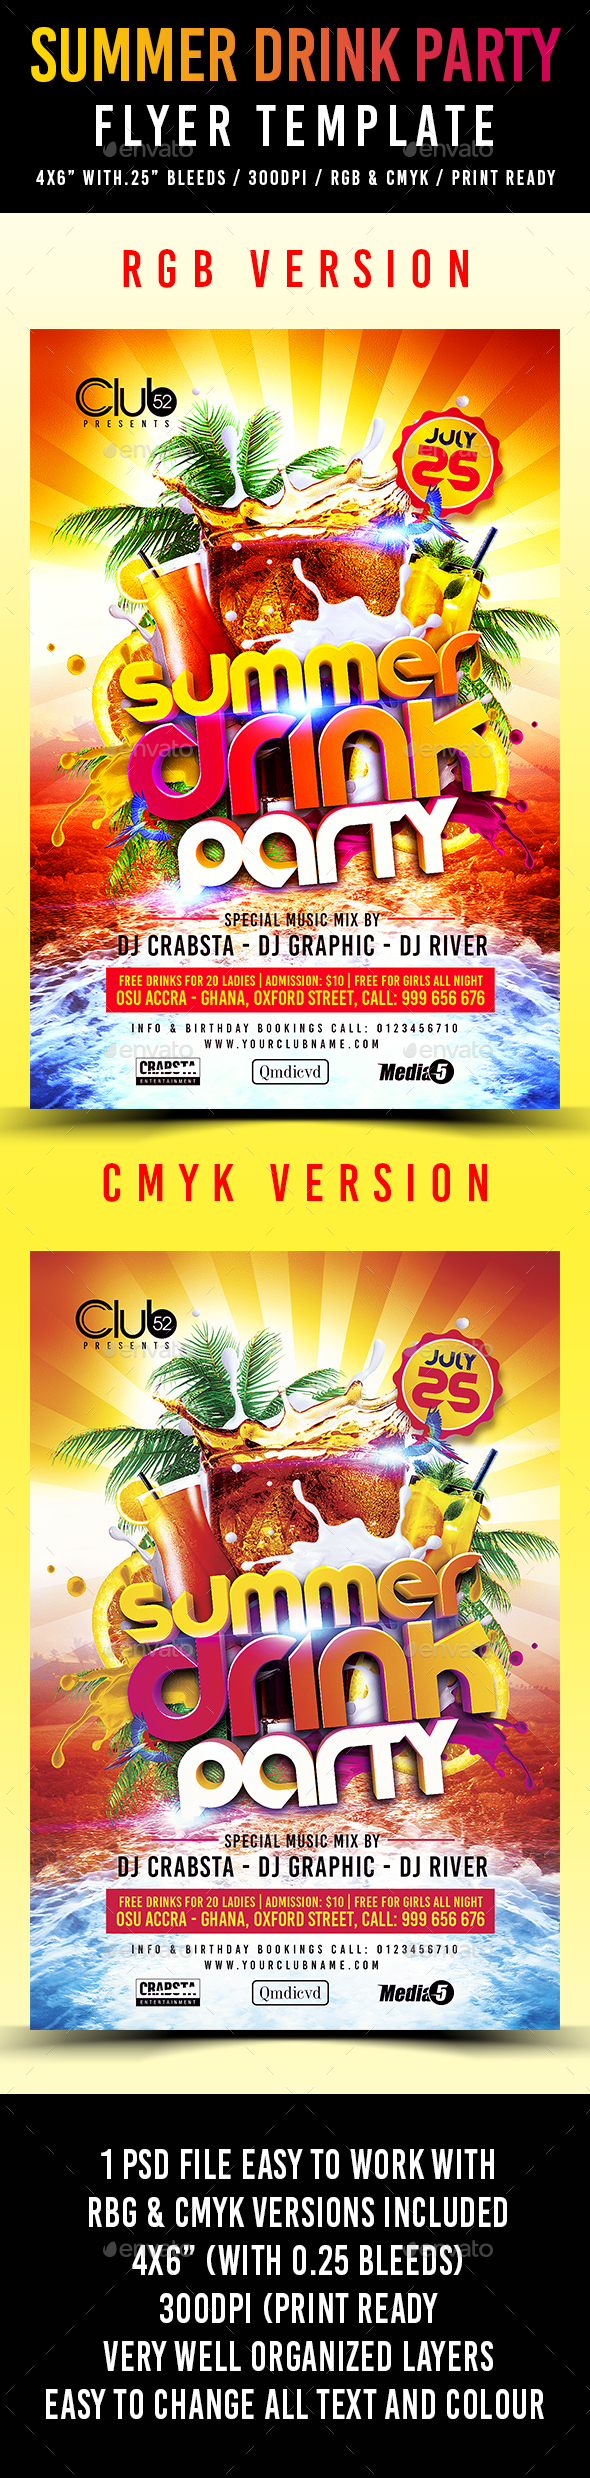 Summer Drink Party Flyer Template - Flyers Print Templates